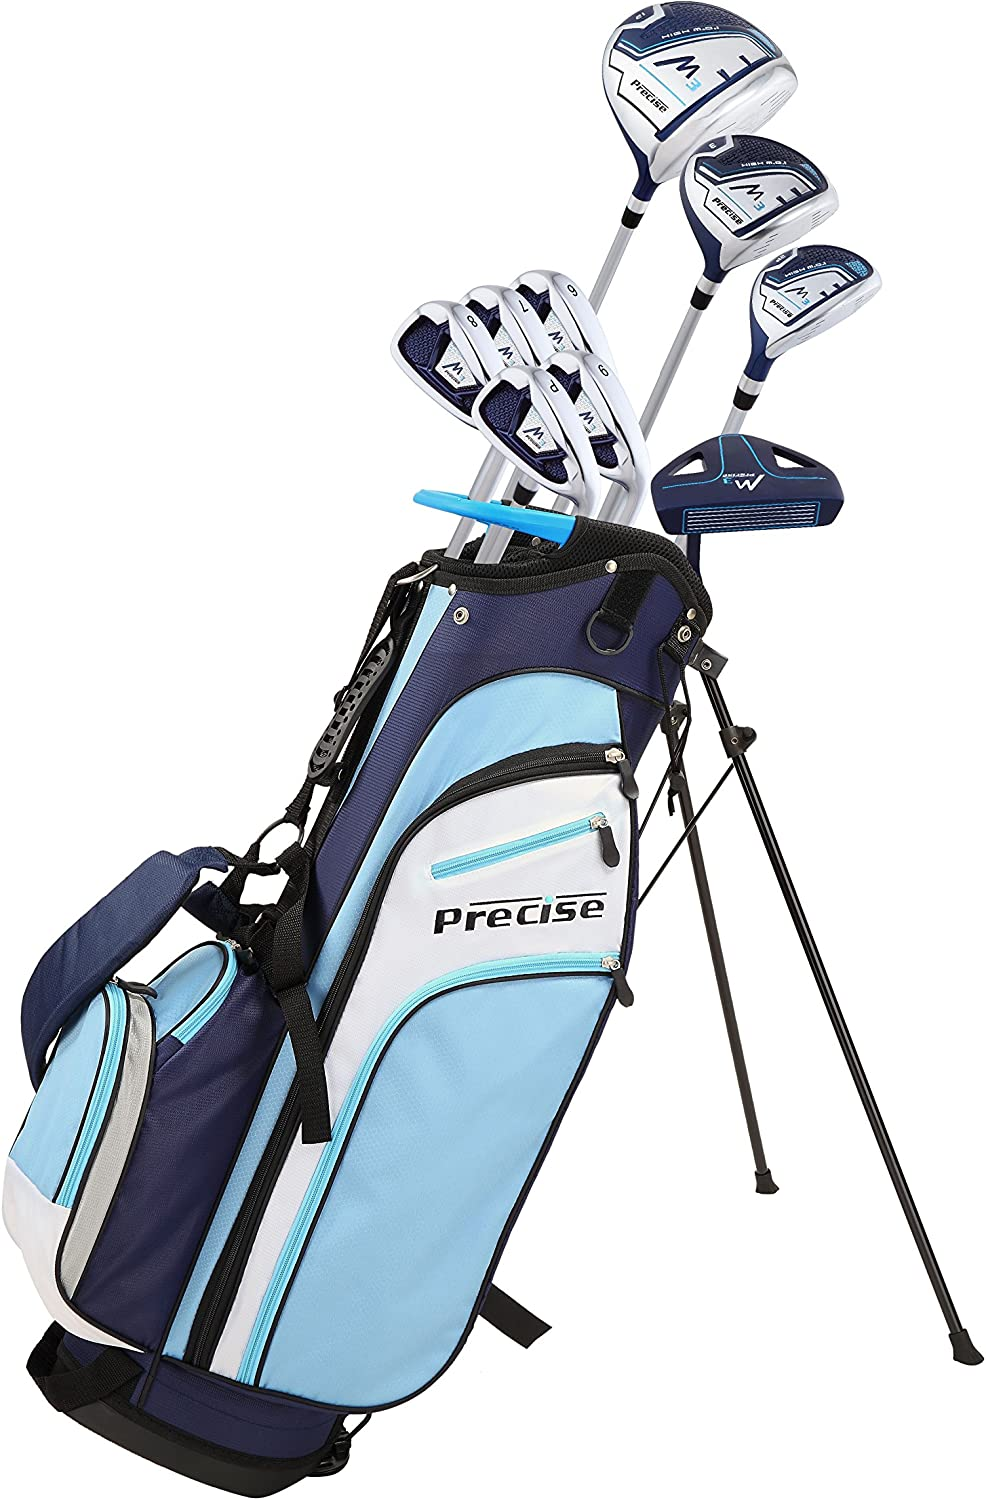 Precise M3 Ladies Womens Complete Golf Clubs Set Includes Driver, Fairway, Hybrid, 7-PW Irons, Putter, Stand Bag, 3 H/C's Blue - Regular or Petite Size!